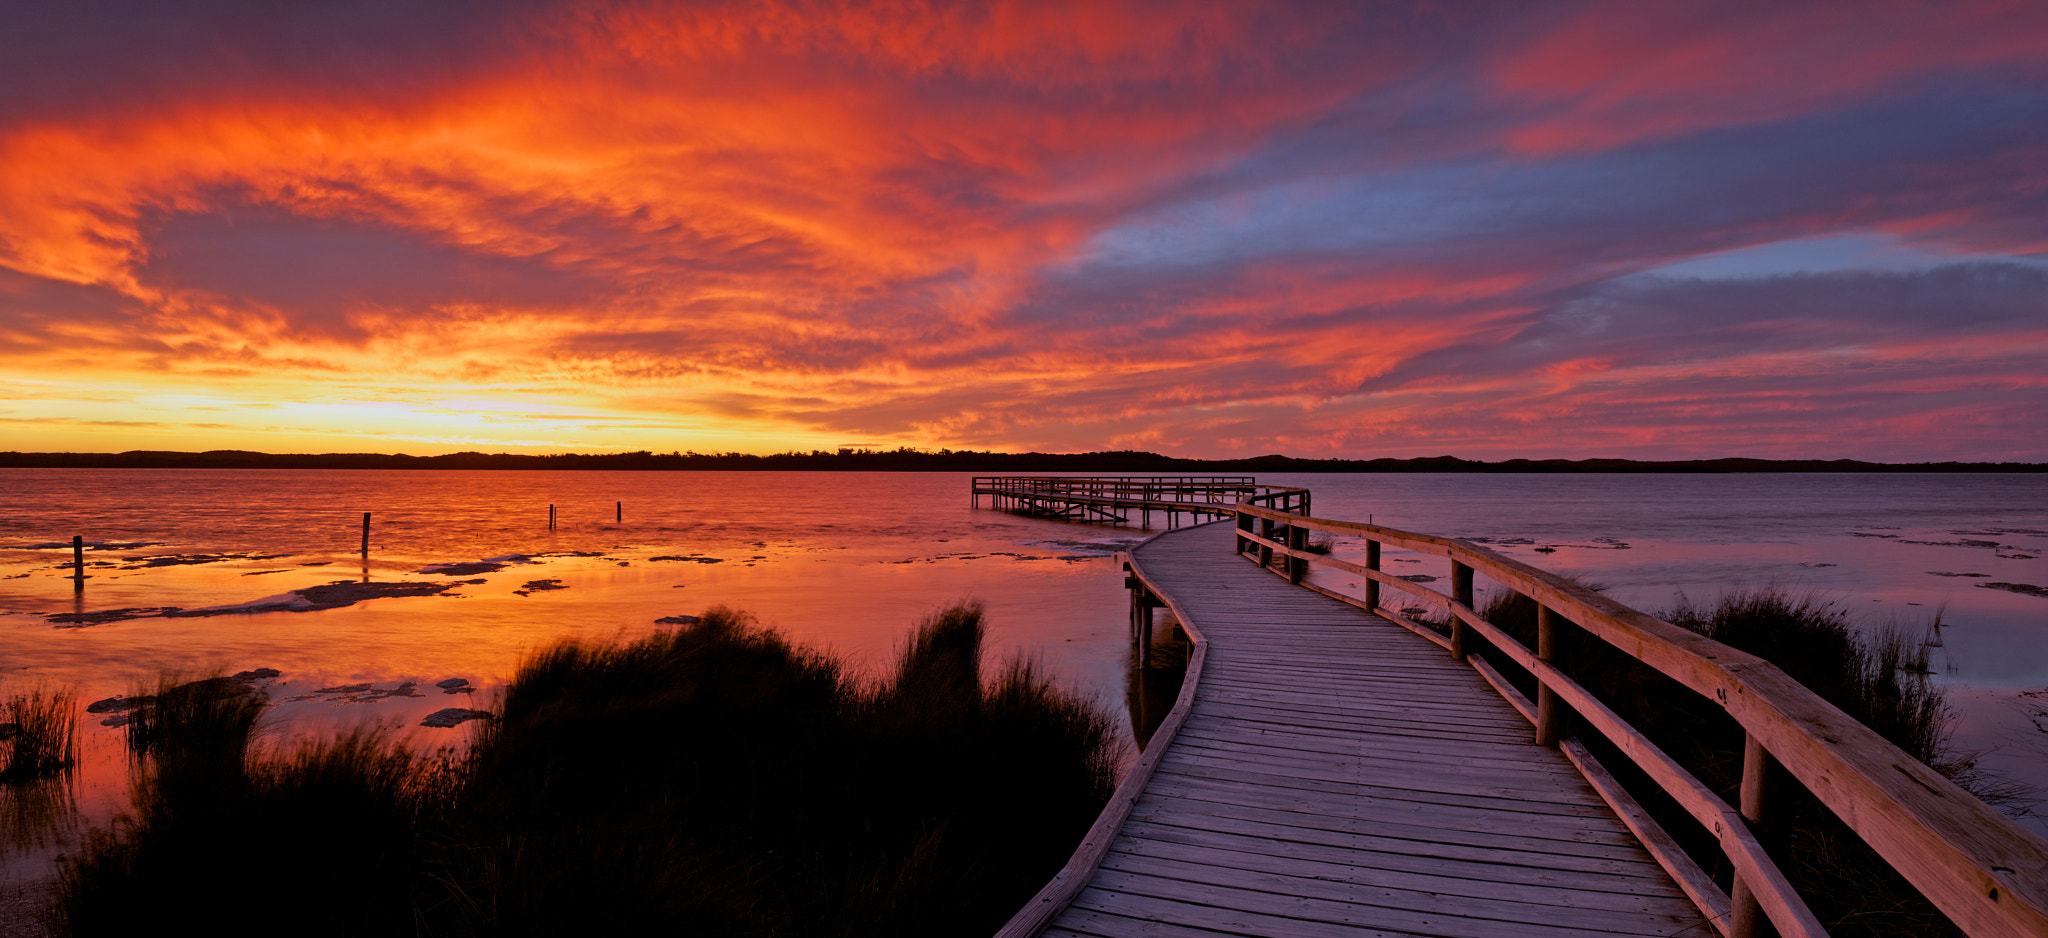 Photograph Lake Clifton sunset by Peter Hodgson on 500px